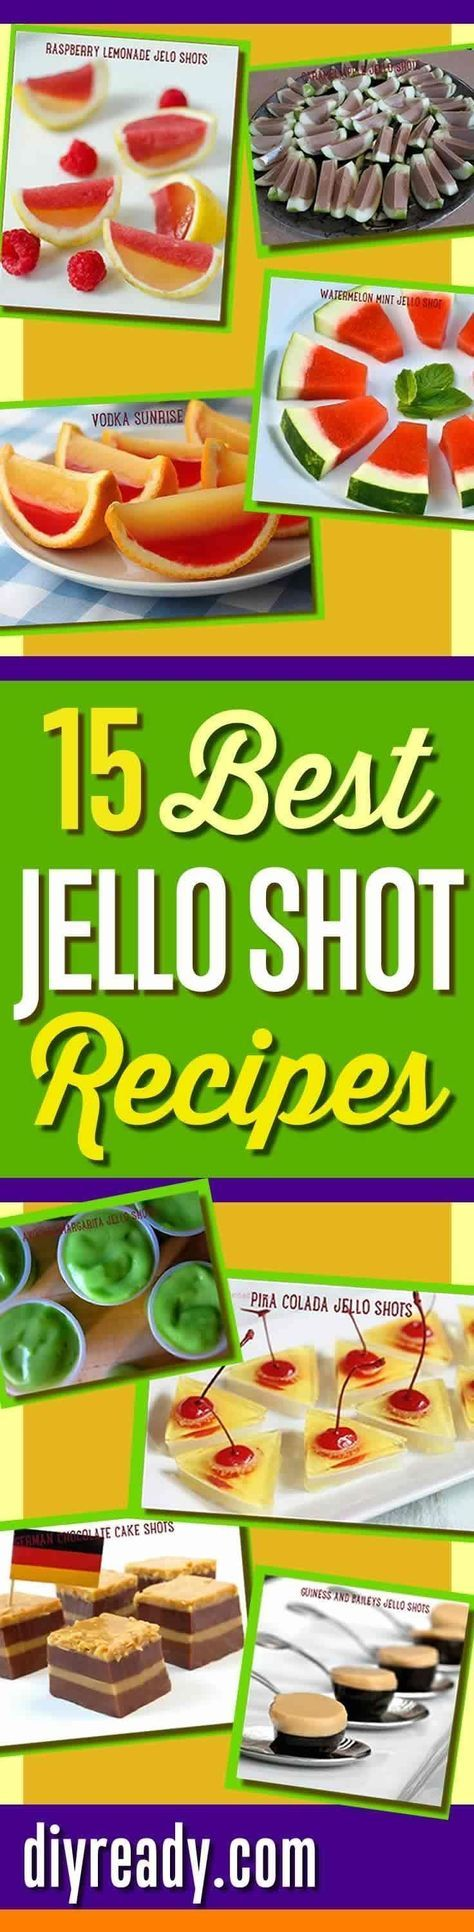 How To Make The Best Jello Shot Recipes | Easy and Creative Ideas for 4th of July Parties, Birthday Parties, And Holiday by DIY Ready.